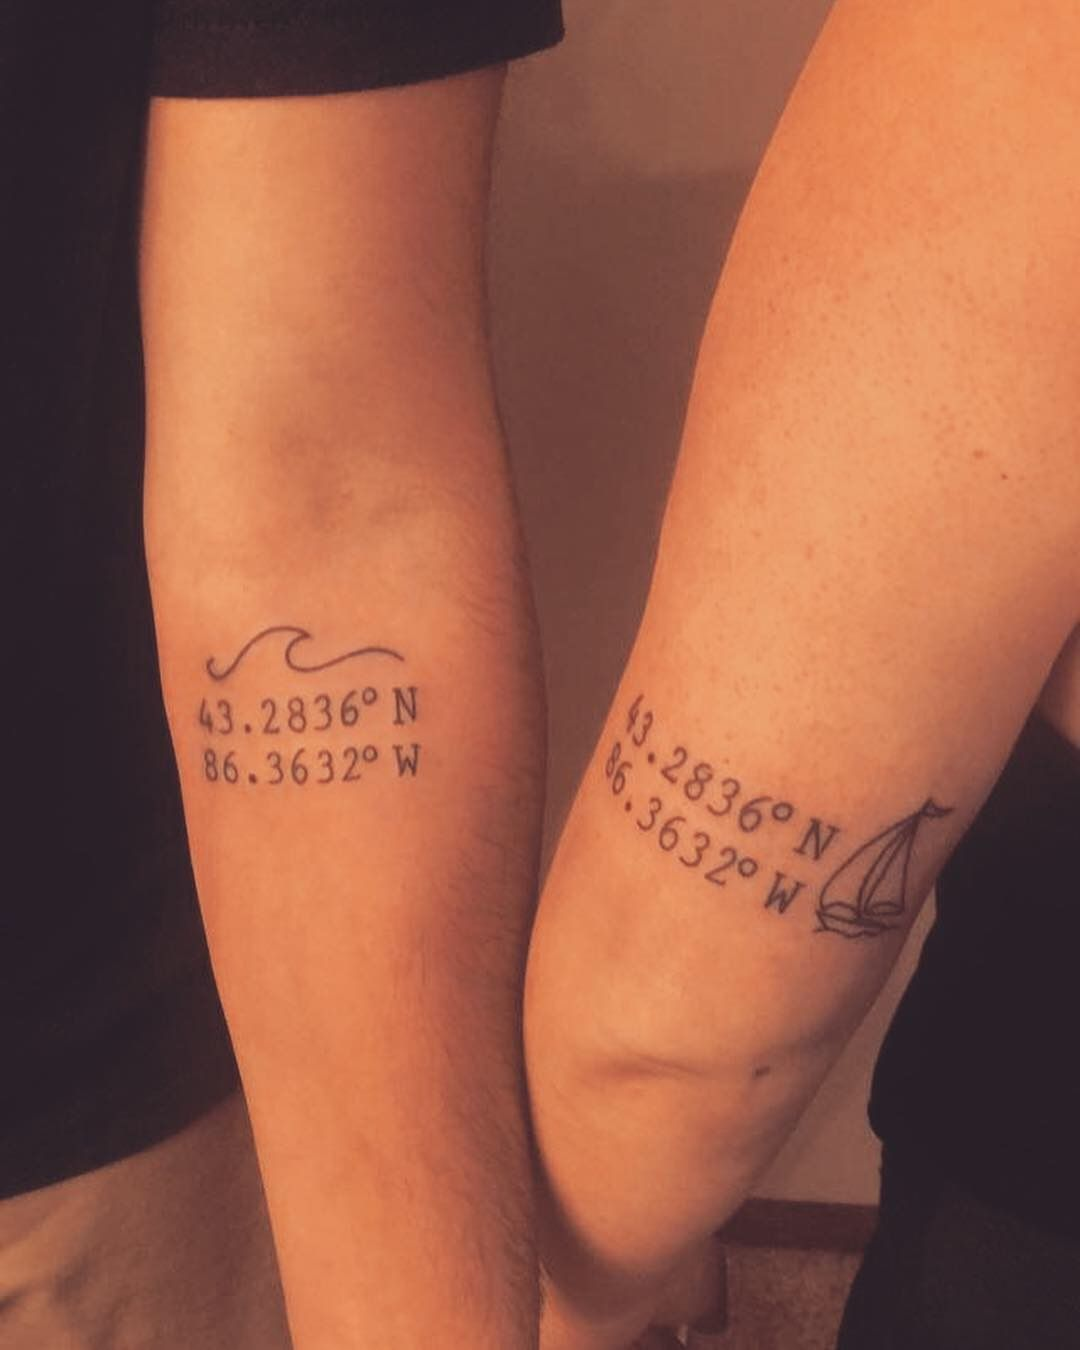 Brother and sister tattoo. Coordinates to childhood camp grounding Lake Michigan  ❤️ #tattoocoordinates